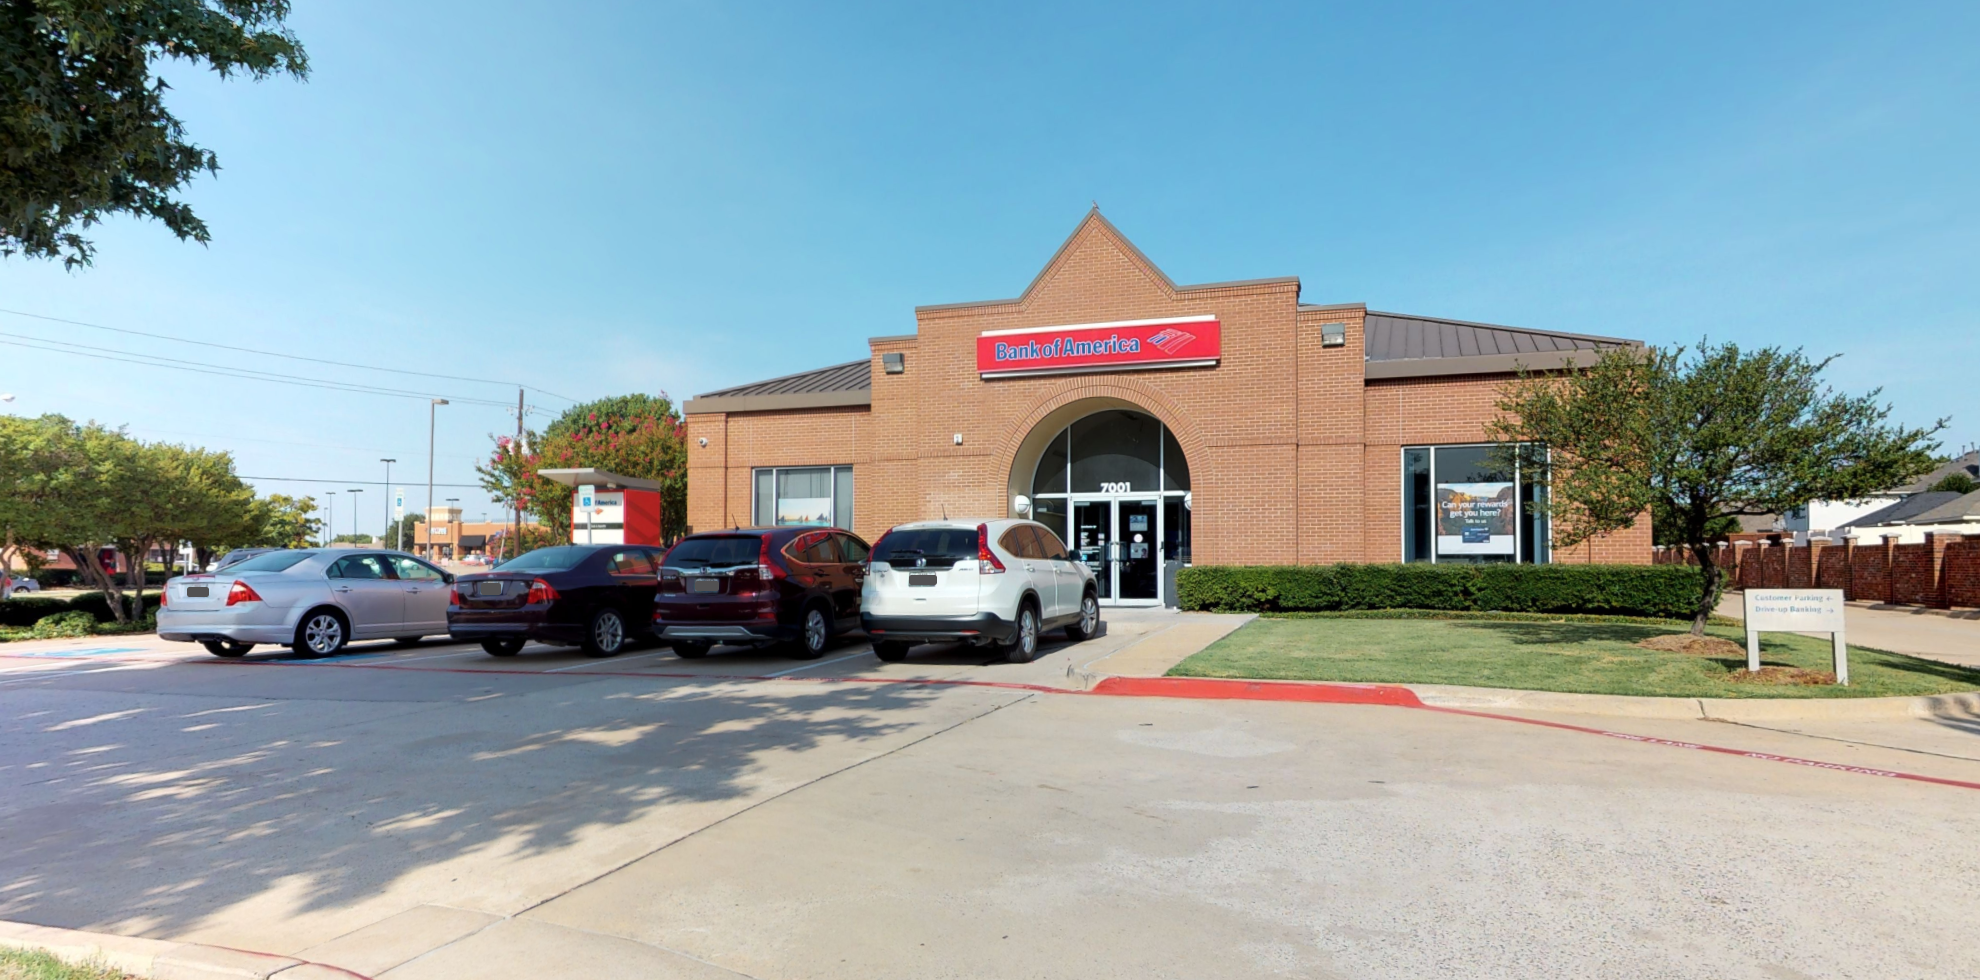 Bank of America financial center with drive-thru ATM | 7001 Independence Pkwy, Plano, TX 75025